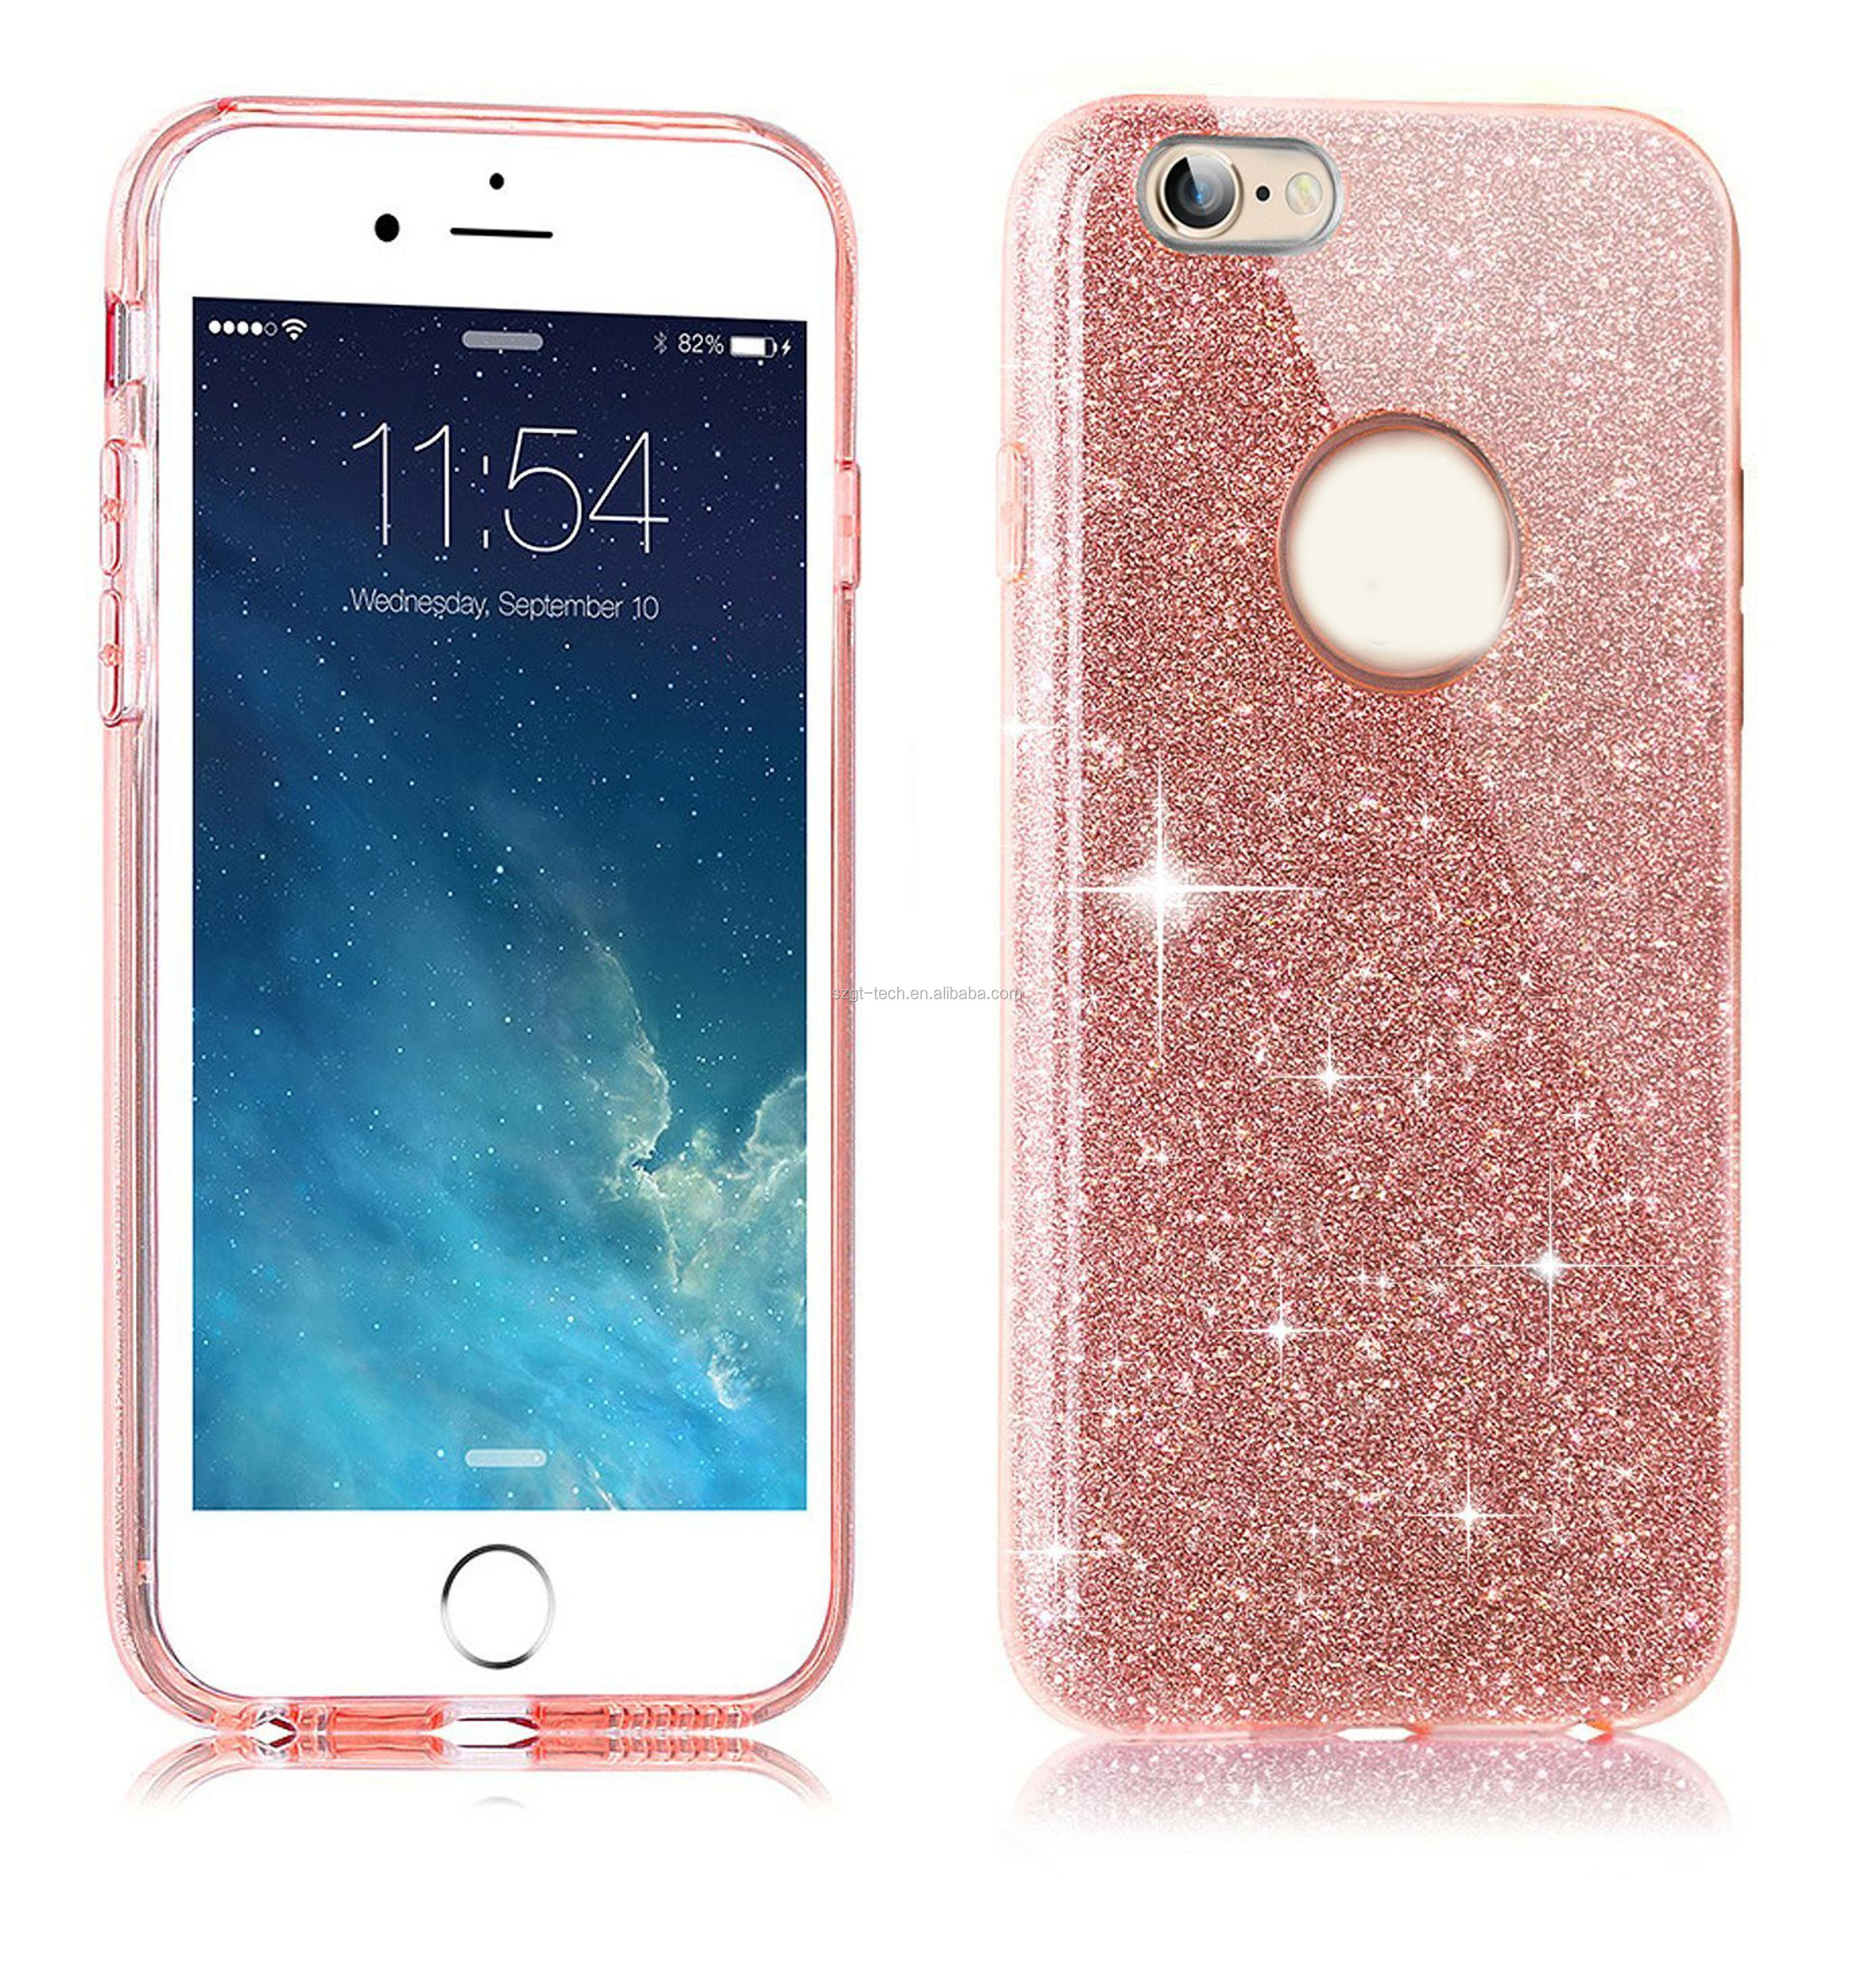 Fashion Phone Accessories Soft TPU Sparkling Shining Bling Glitter customizable phone cases For iPhone 7 7Plus